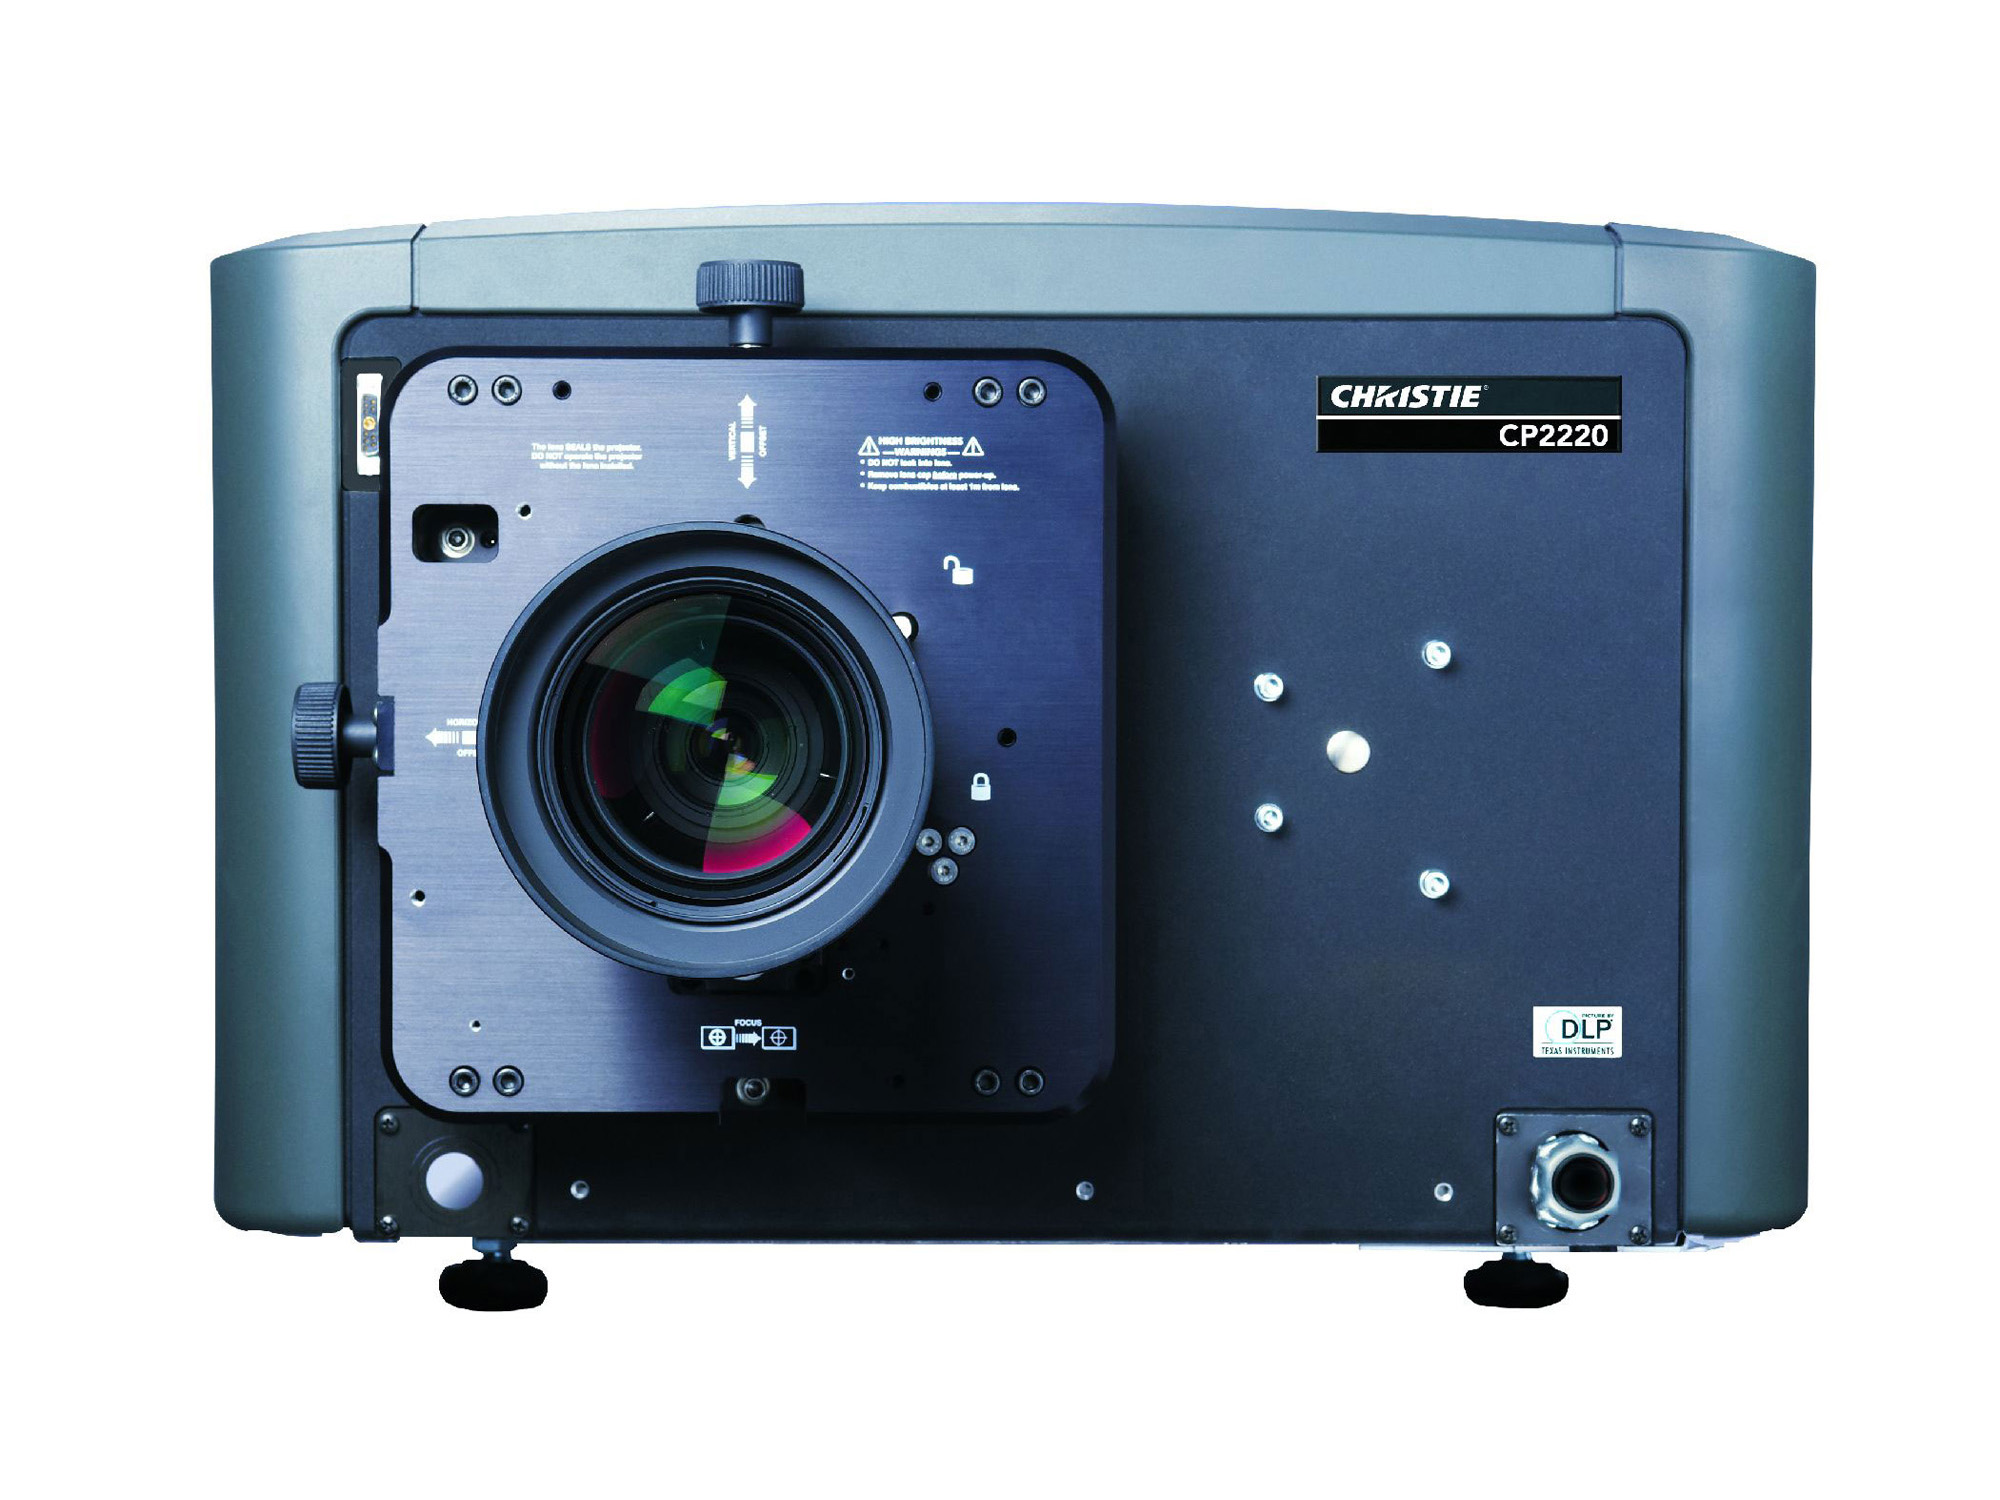 /globalassets/.catalog/products/images/christie-cp2220/gallery/cp2220-digital-cinema-projector-front.jpg